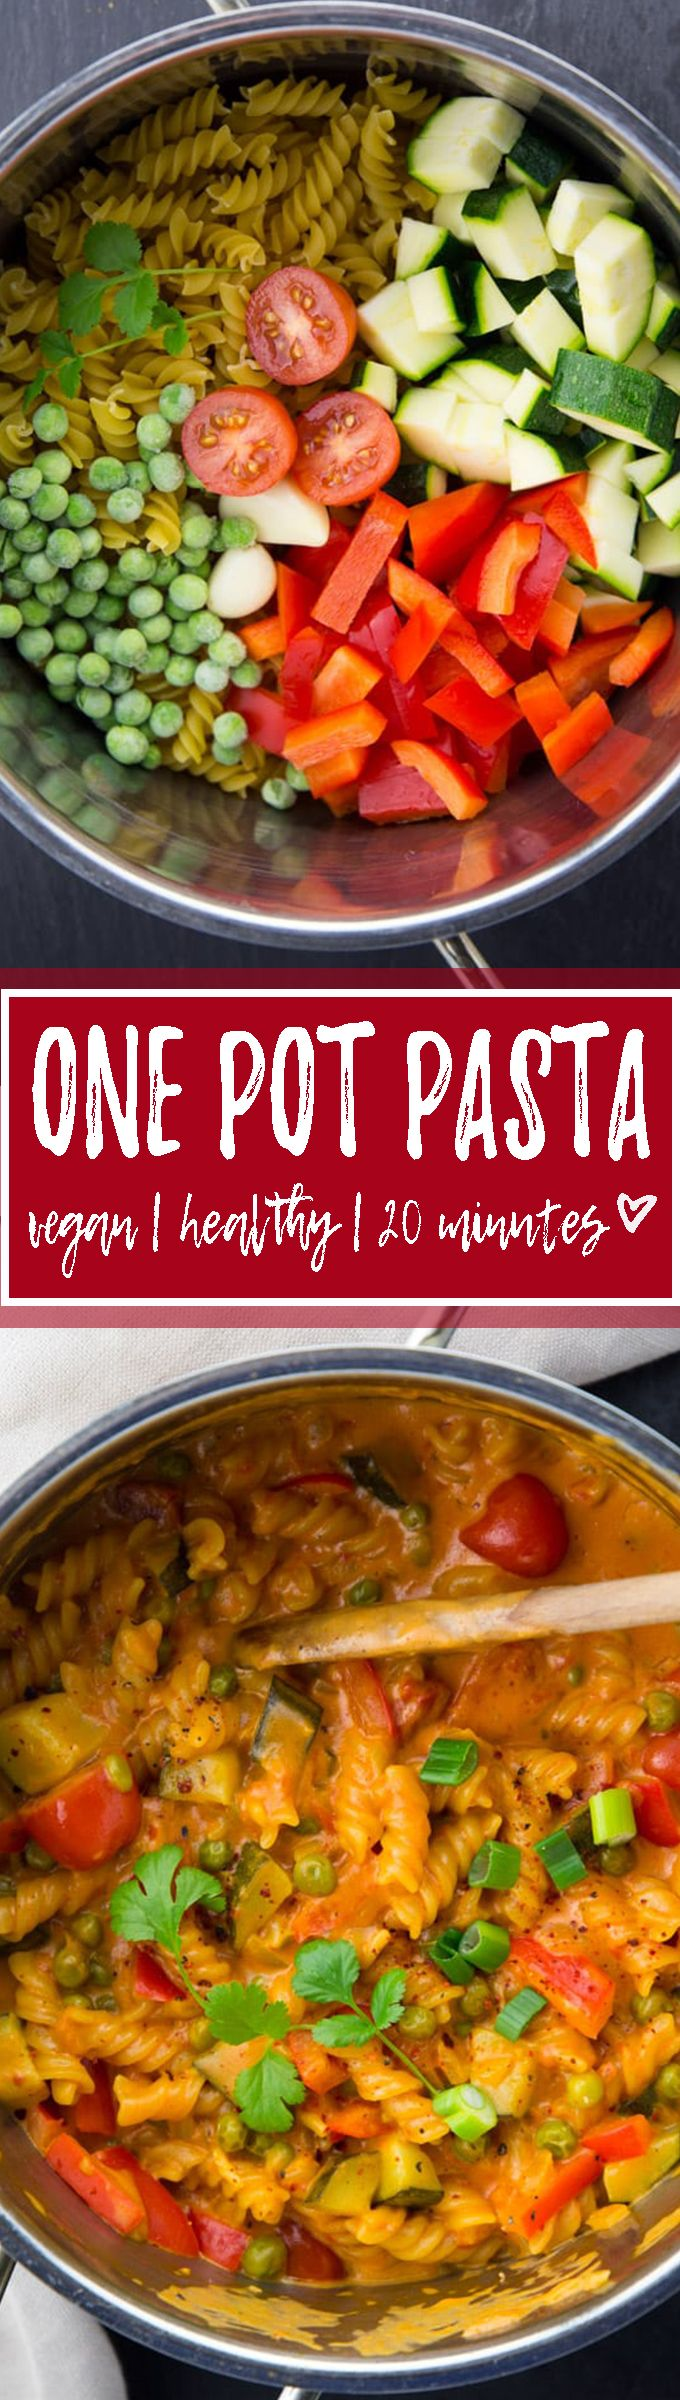 This Asian style vegan one pot pasta with coconut milk and red curry paste is my new favorite meal for weeknight dinners. Easy, healthy, and so incredibly delicious and creamy! <3 | veganheaven.org